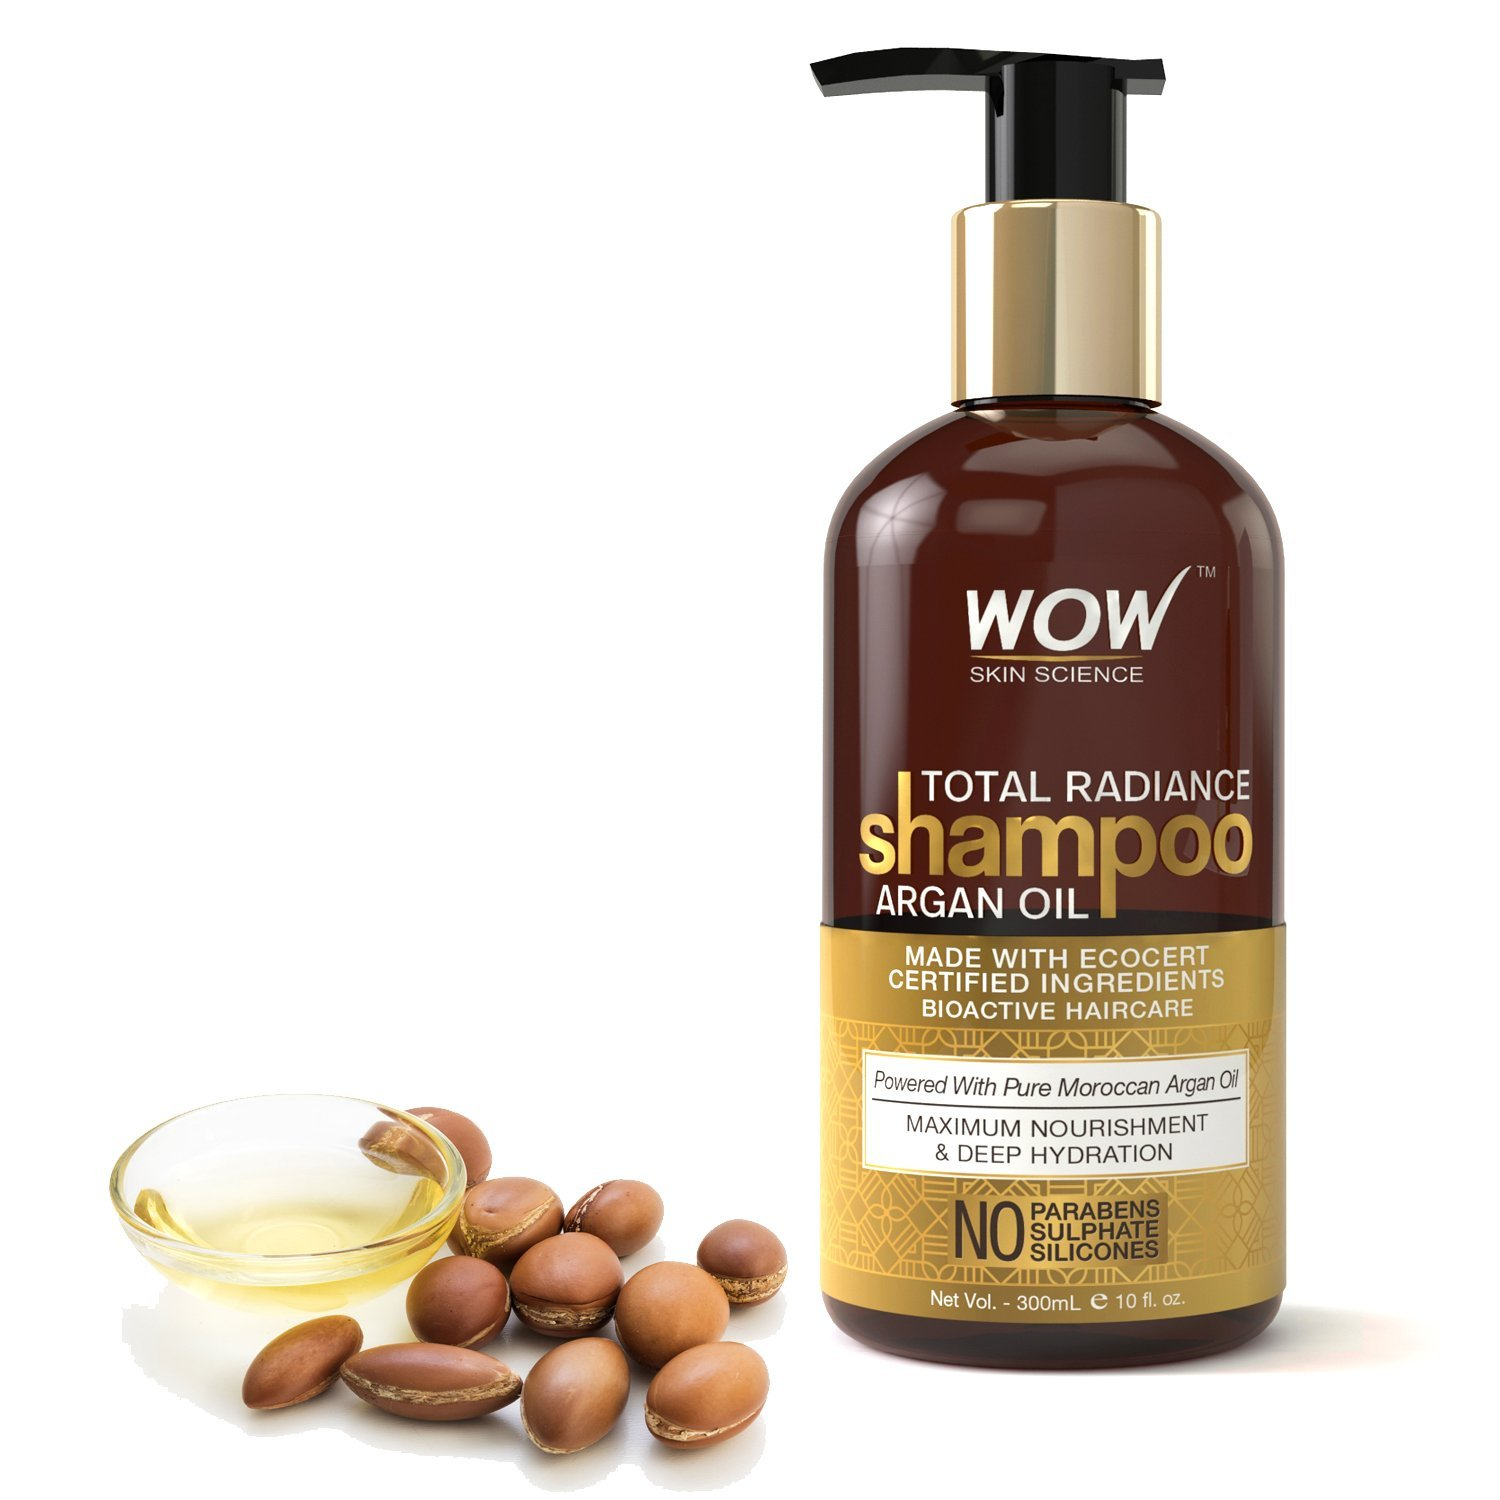 WOW Total Radiance No Parabens, Sulphate & Silicone Shampoo, 300mL